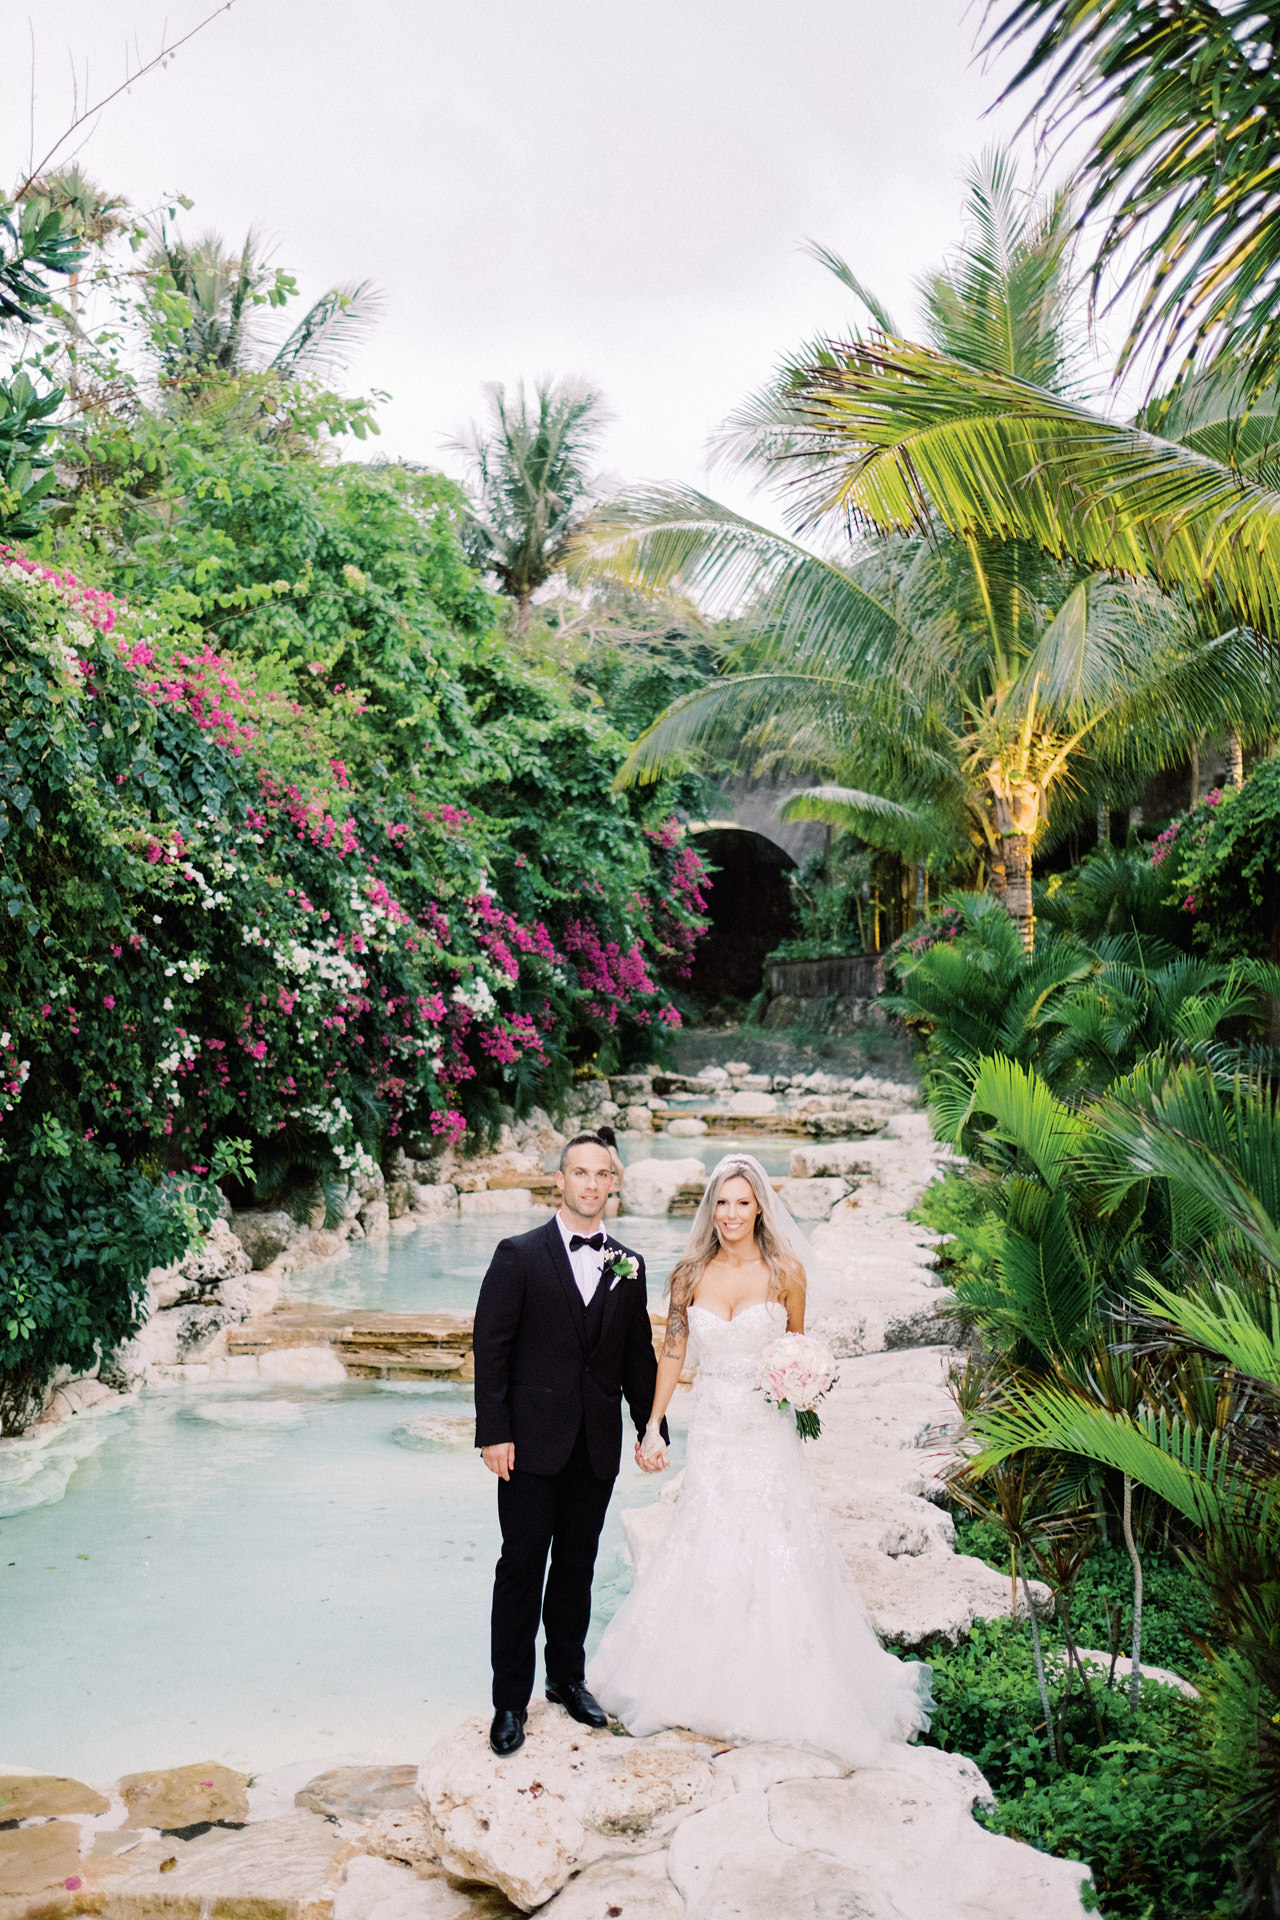 B&J: The Edge Uluwatu Bali Wedding 27